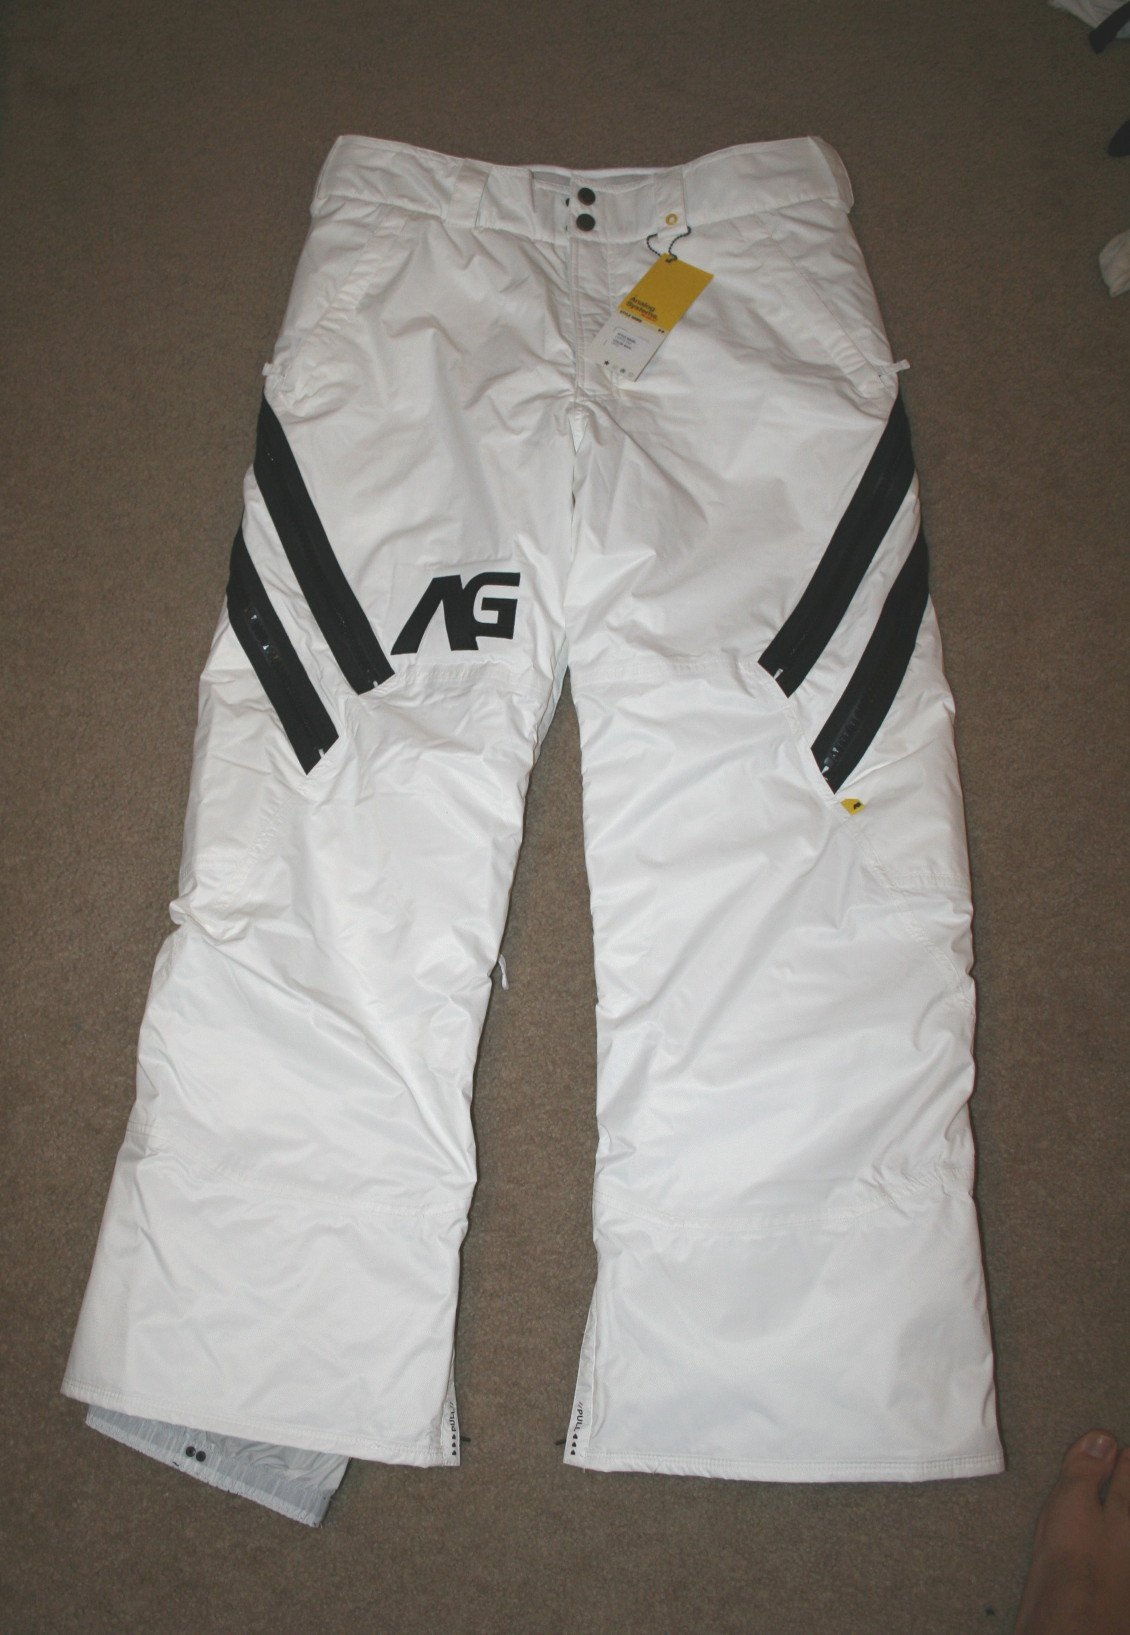 '09 Analog Coffin pants